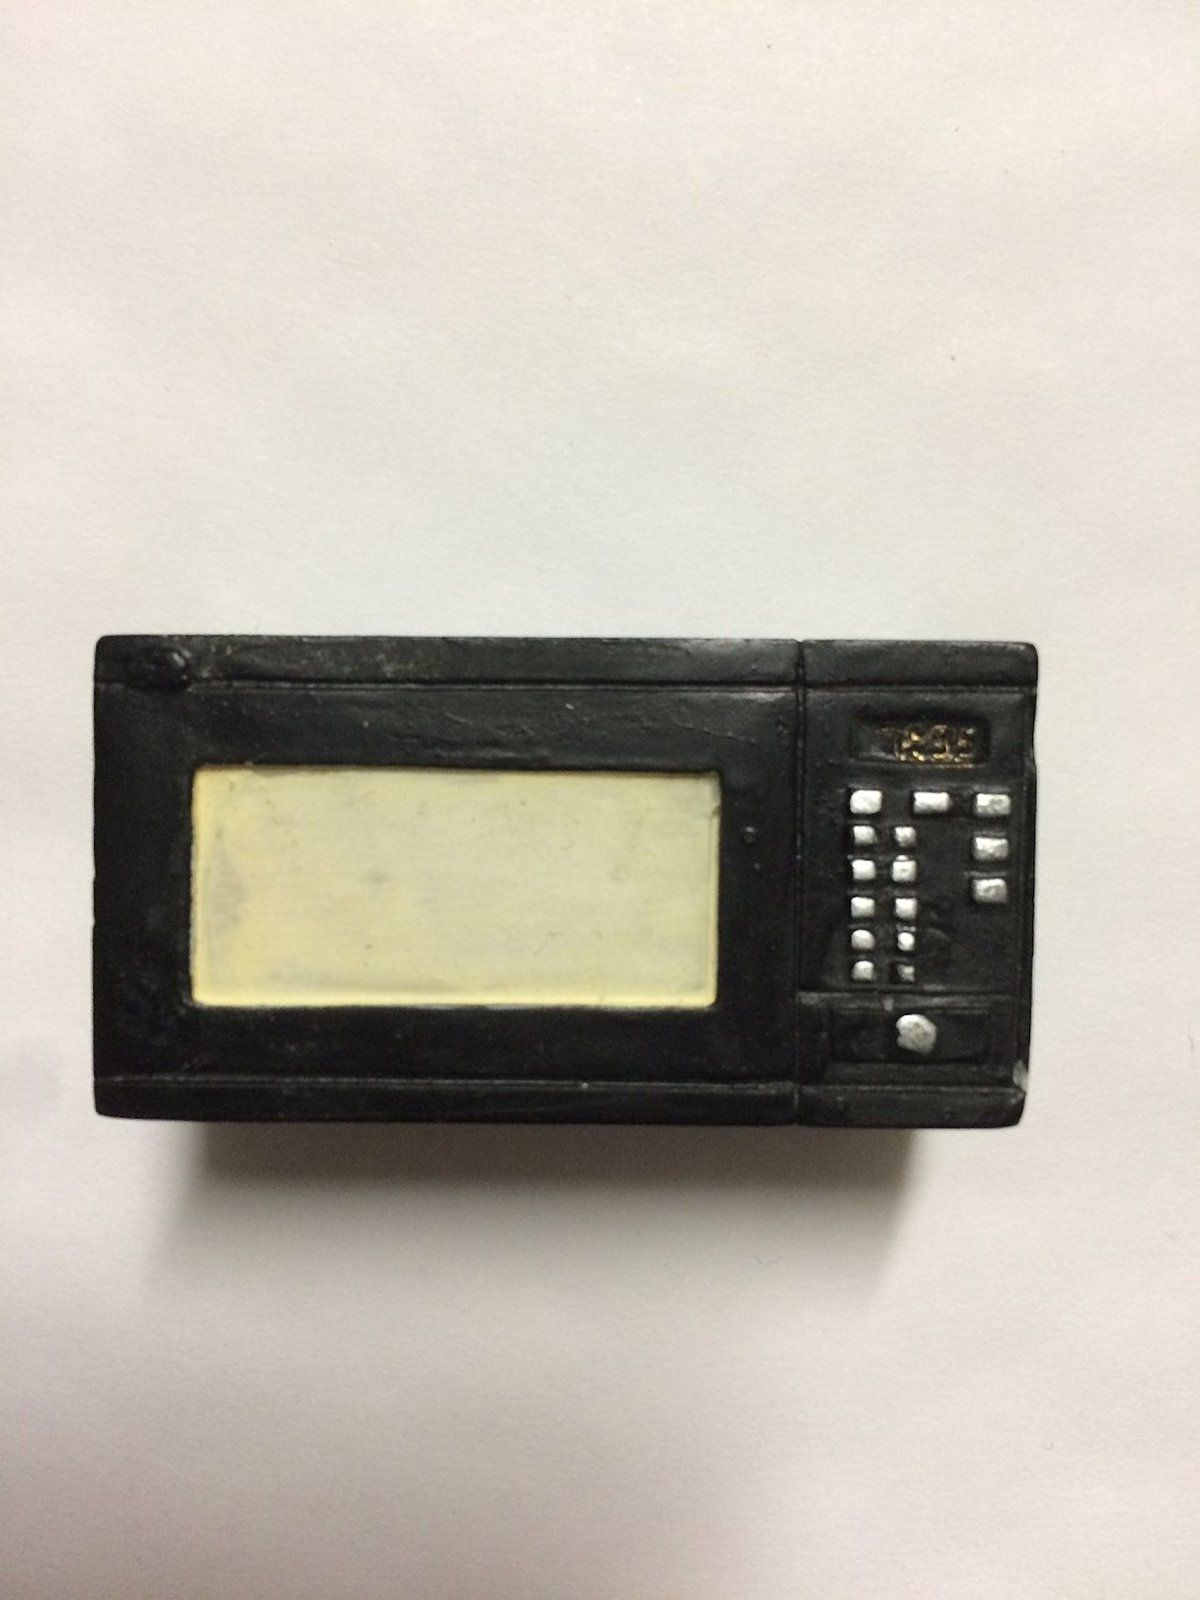 Dollhouse Miniature 1:12 Scale Black Resin Microwave #M1727